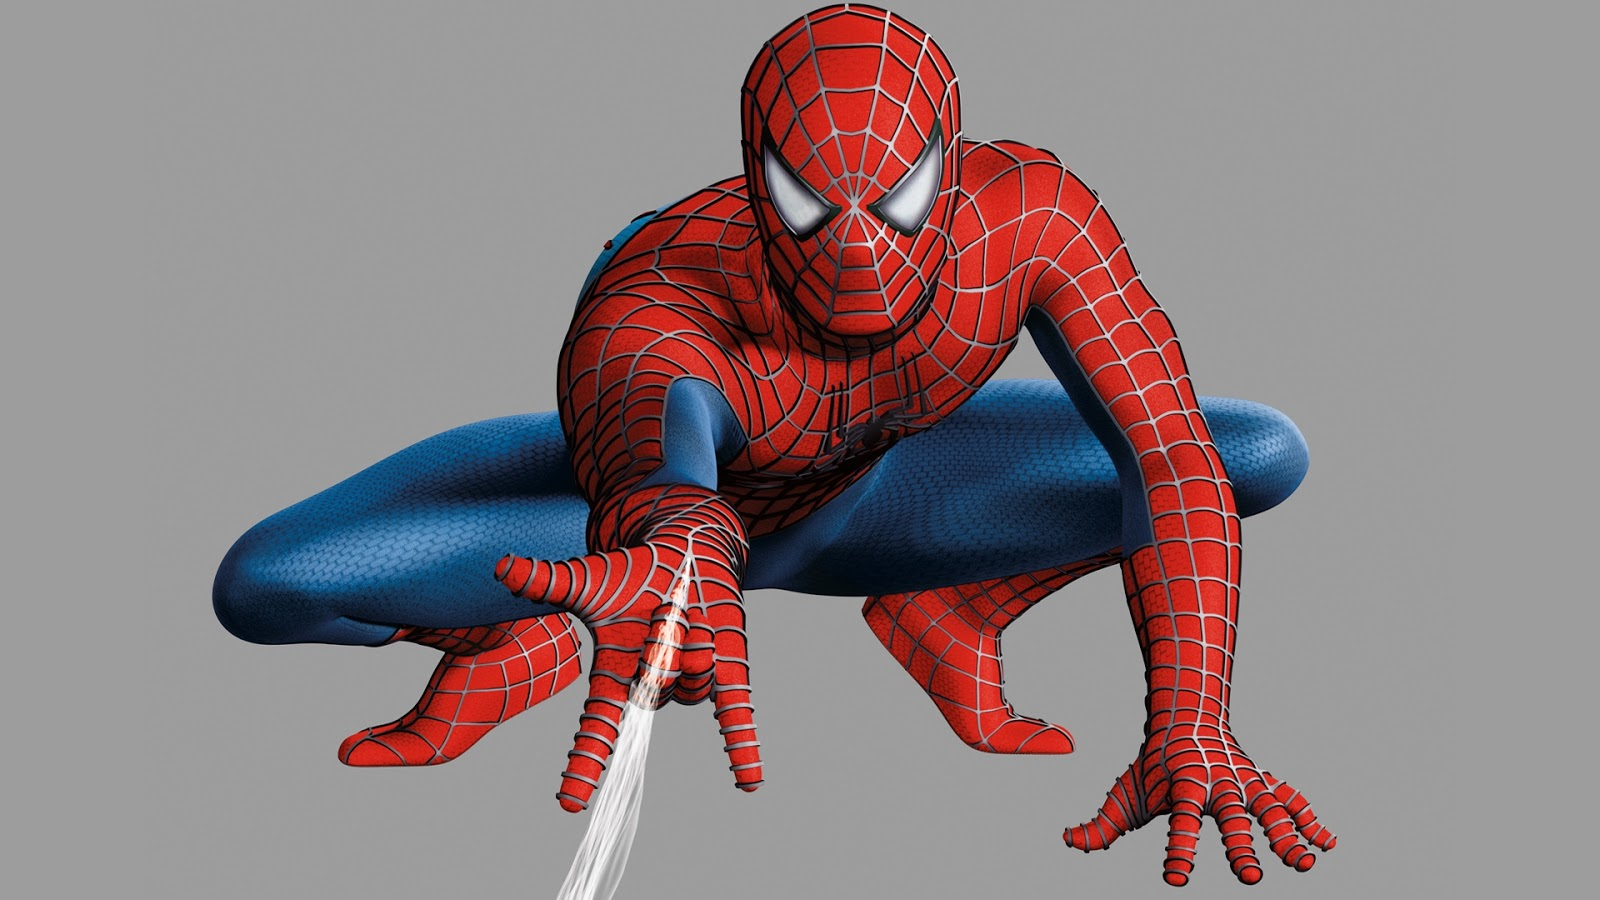 Cool Spiderman HD Pictures